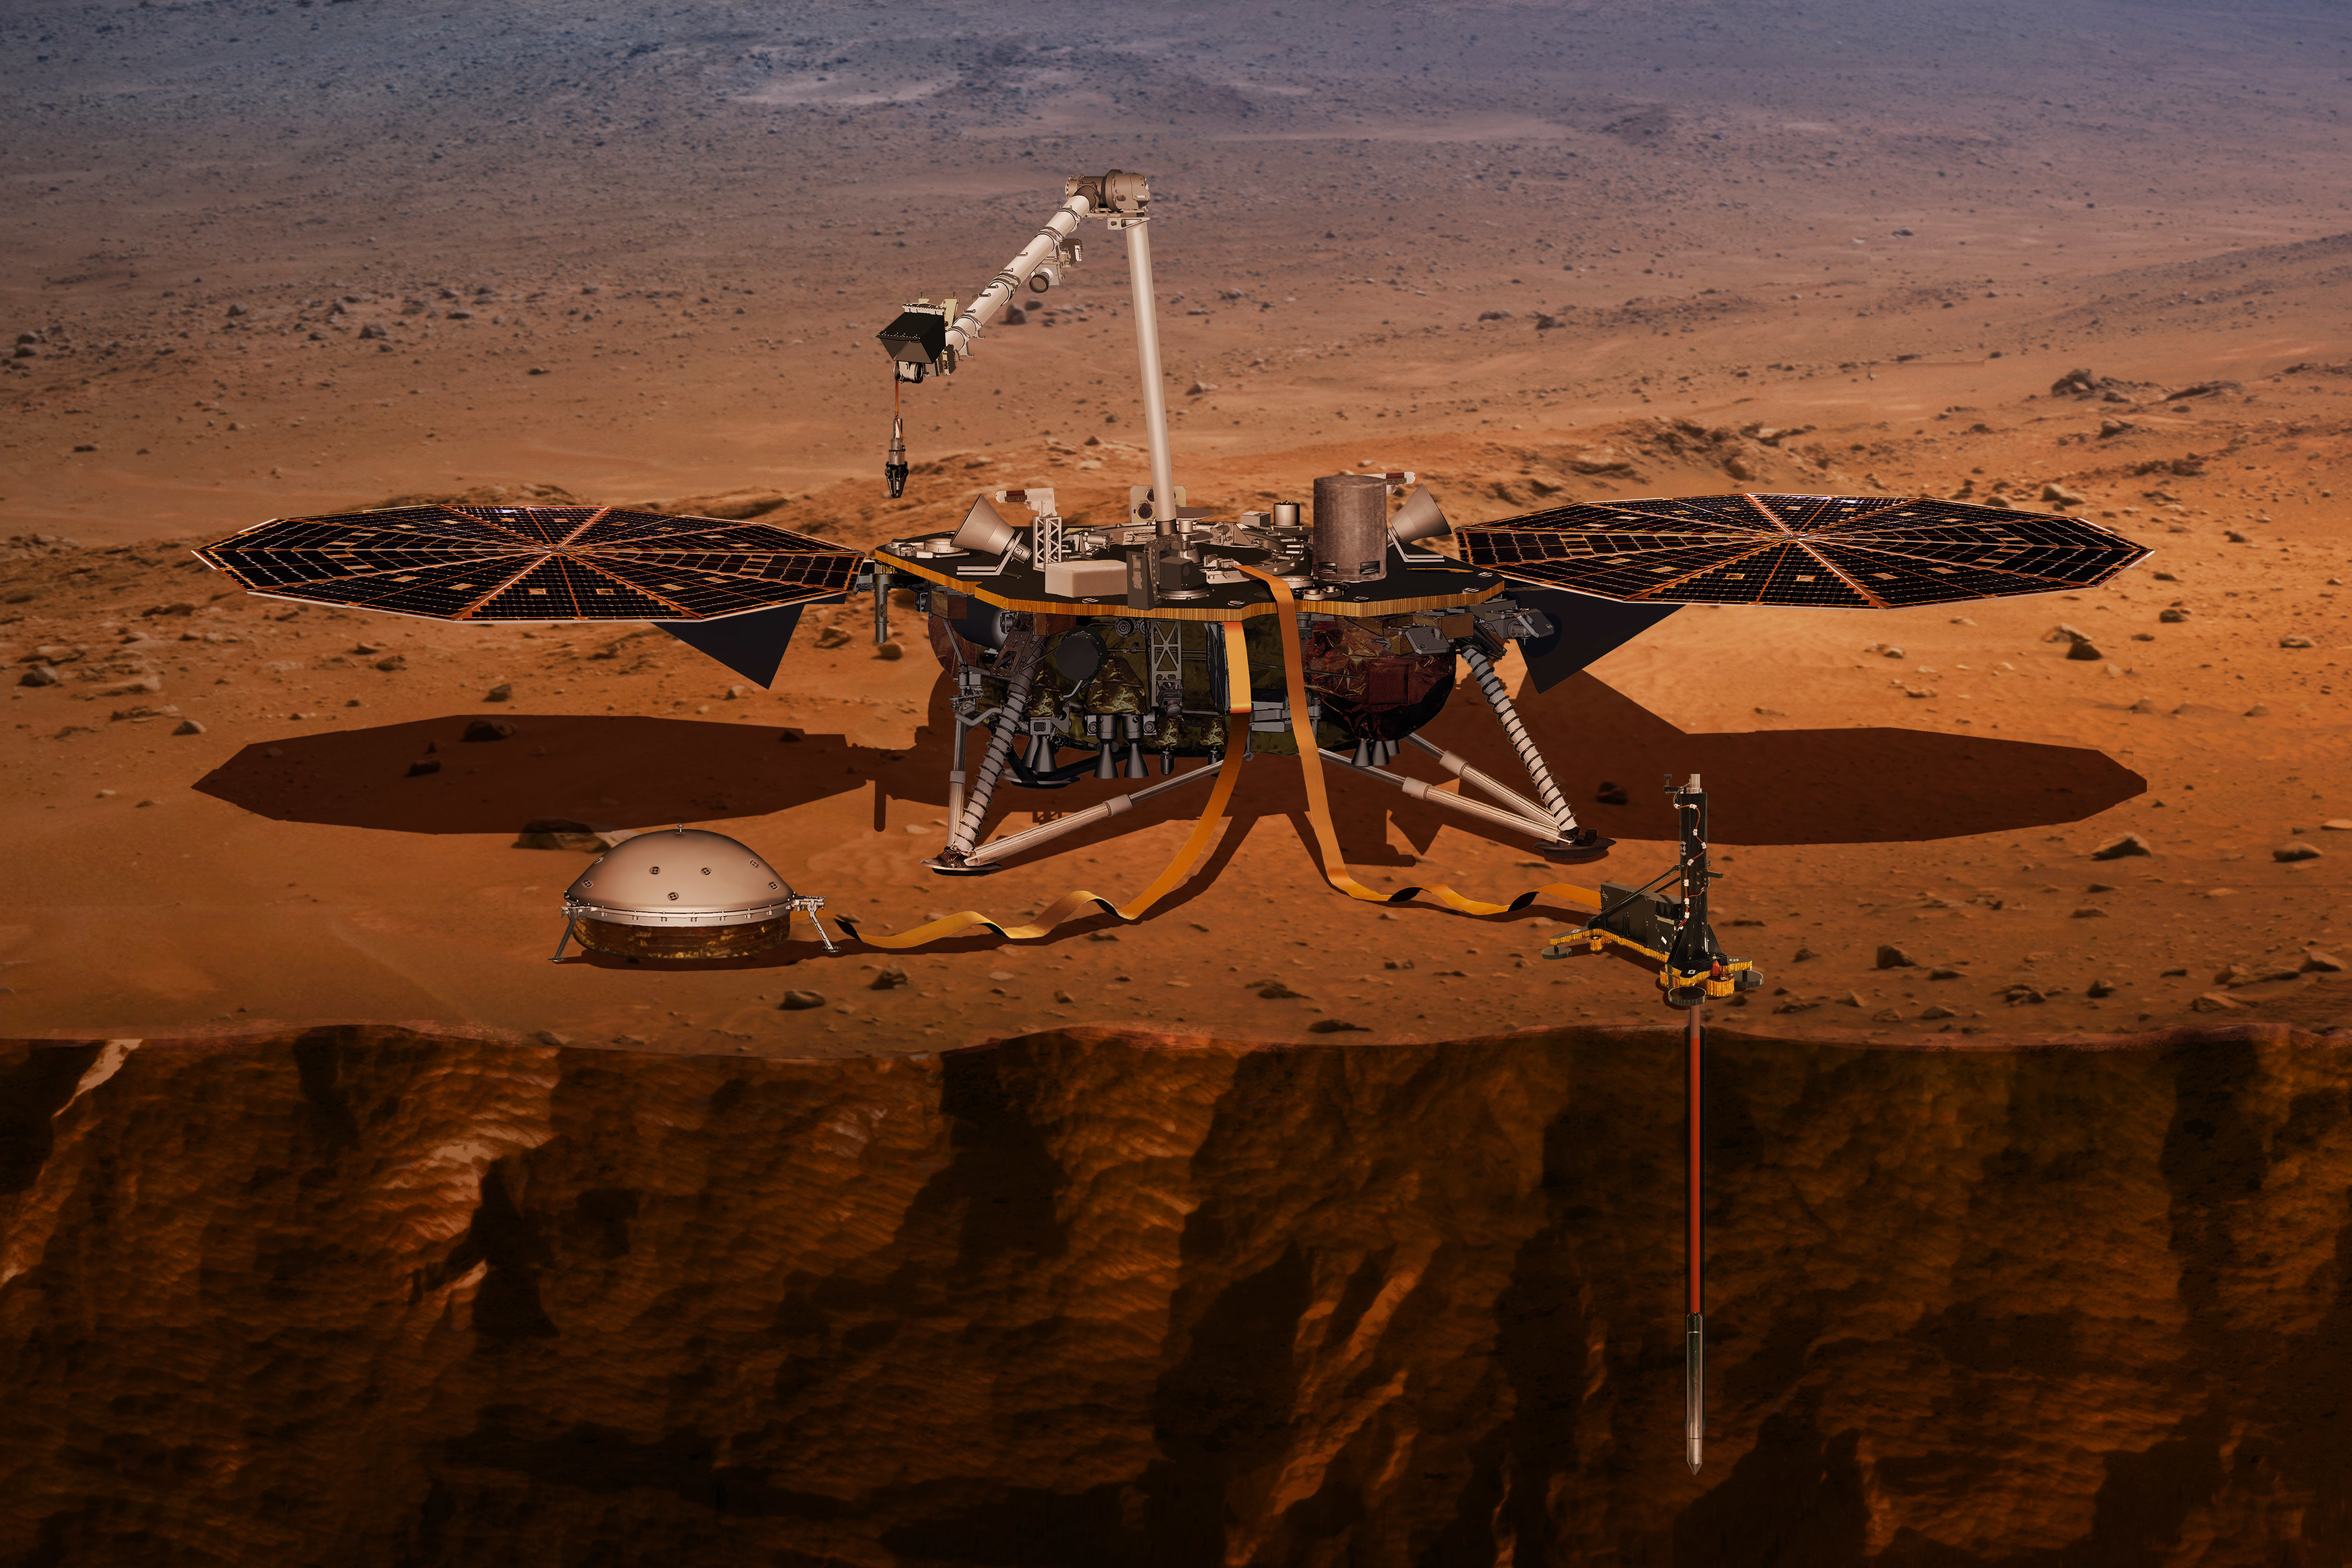 This illustration made available by NASA in 2018 shows the InSight lander drilling into Mars. InSight, short for Interior Exploration using Seismic Investigations, Geodesy and Heat Transport, was launched from Vandenberg Air Force Base on Saturday, May 5, 2018. It will land on Mars six months later. PHOTO: NASA Via AP